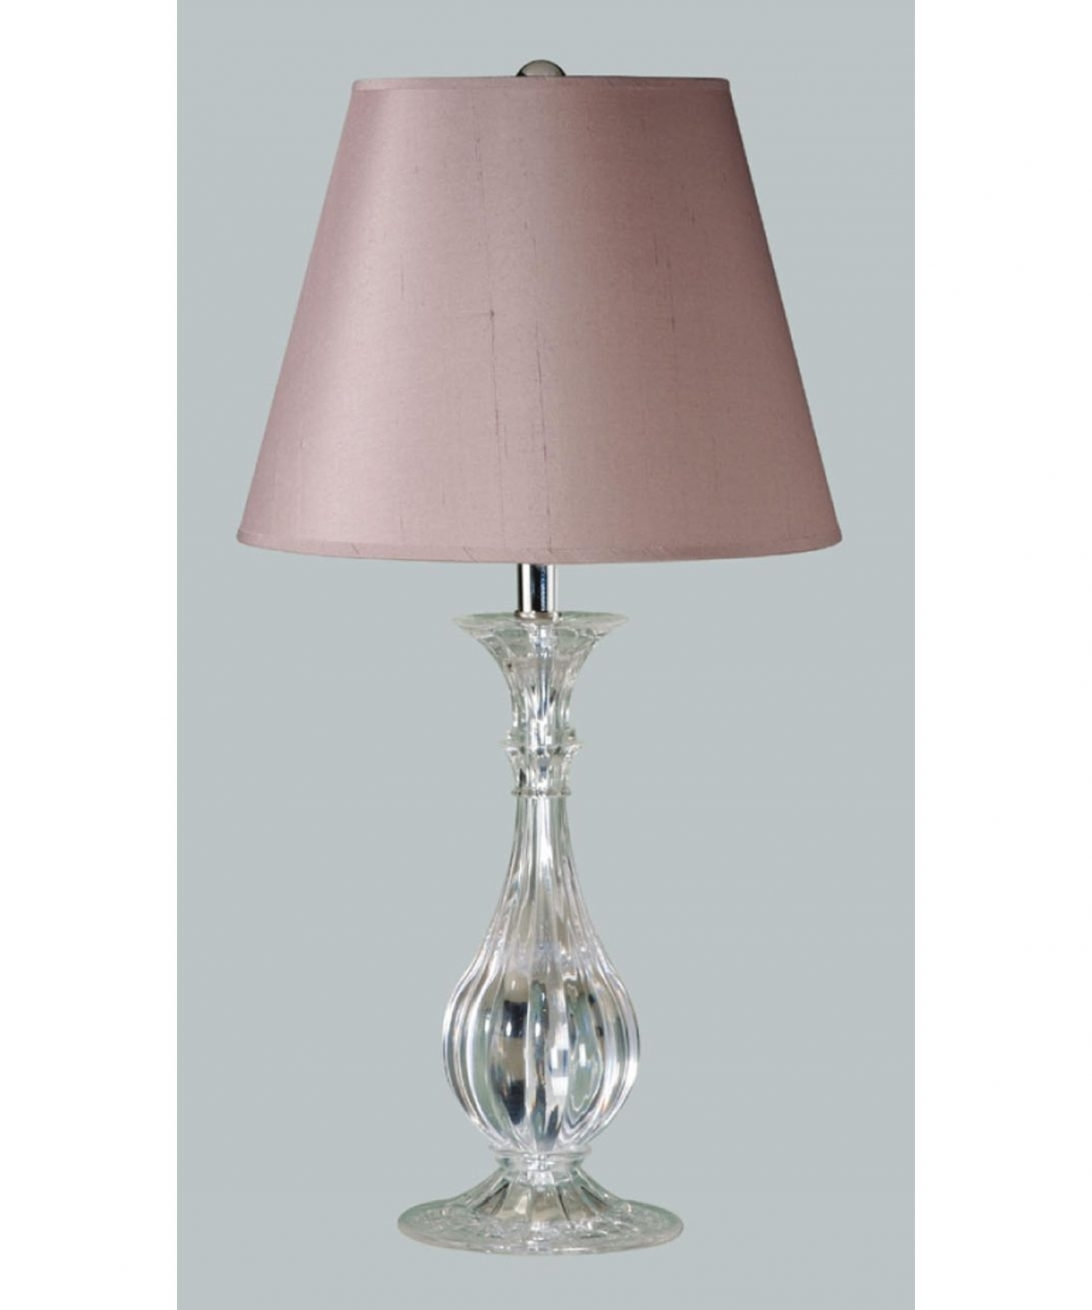 Inspiration about 1940S Floor Lamp New Glass Table Base Laura Ashley Lamps – Downthewicket Within Laura Ashley Table Lamps For Living Room (#7 of 15)